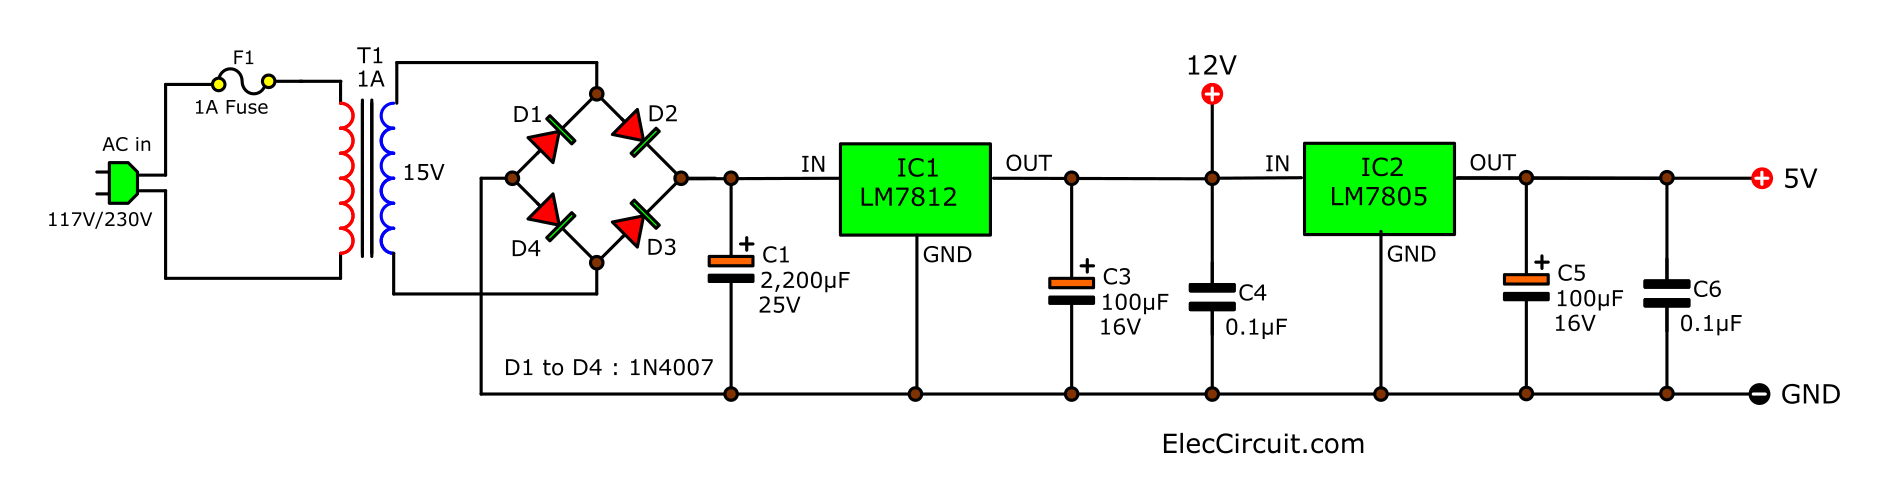 12v Ac To Dc Converter Schematic - Wiring Diagrams User